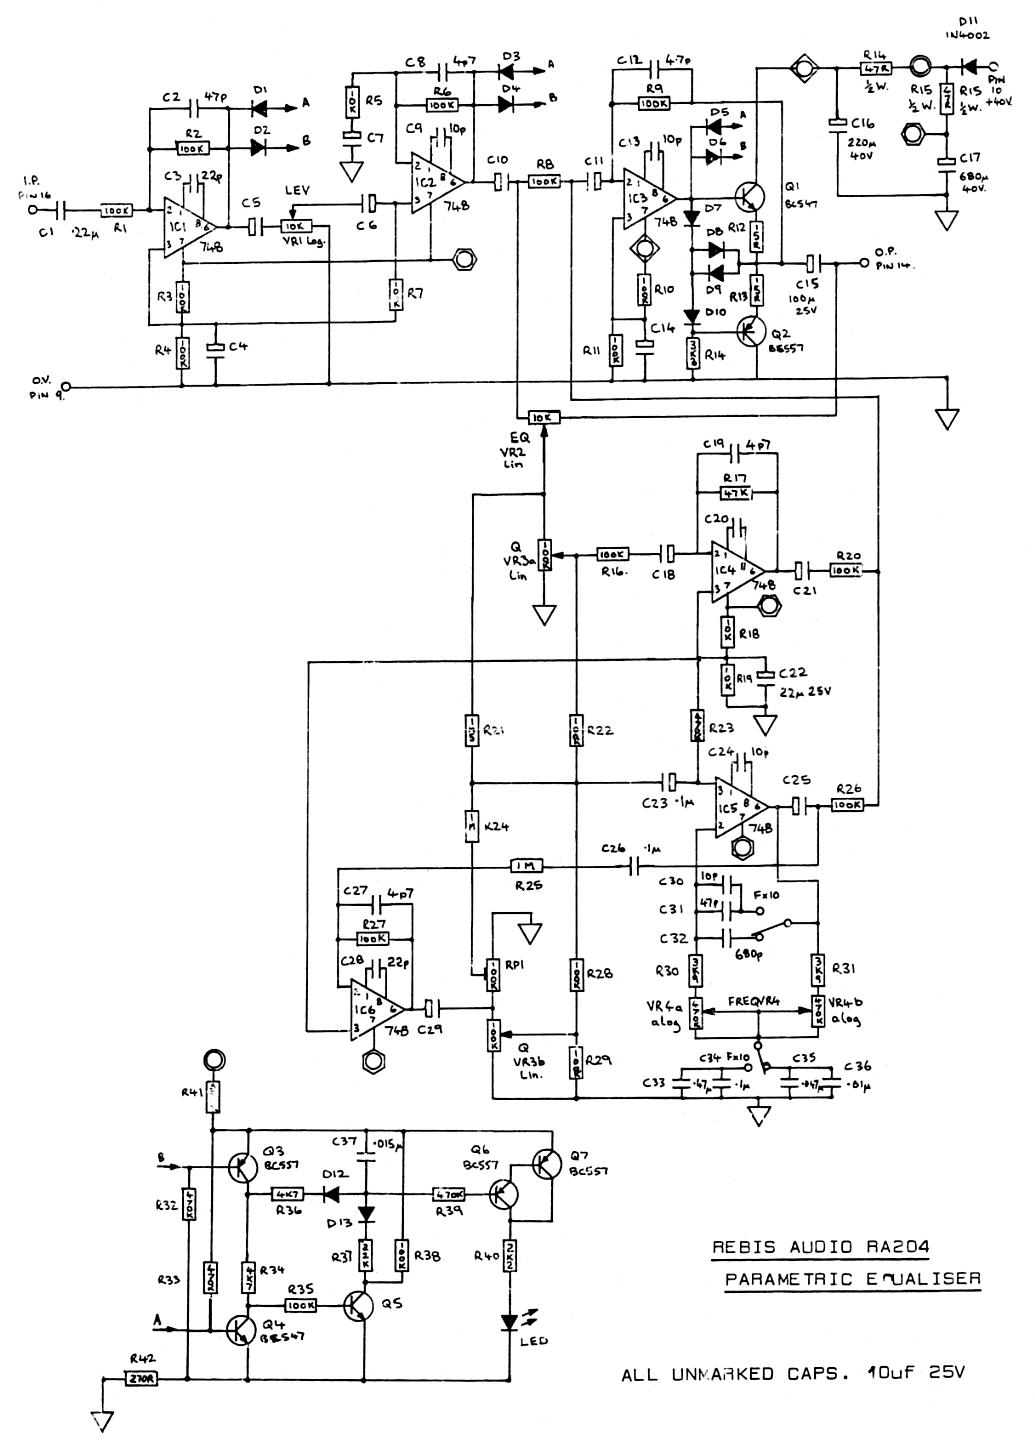 rebis audio ra204 parametric eq cct circuit dia's new holland l555 wiring diagram at et-consult.org